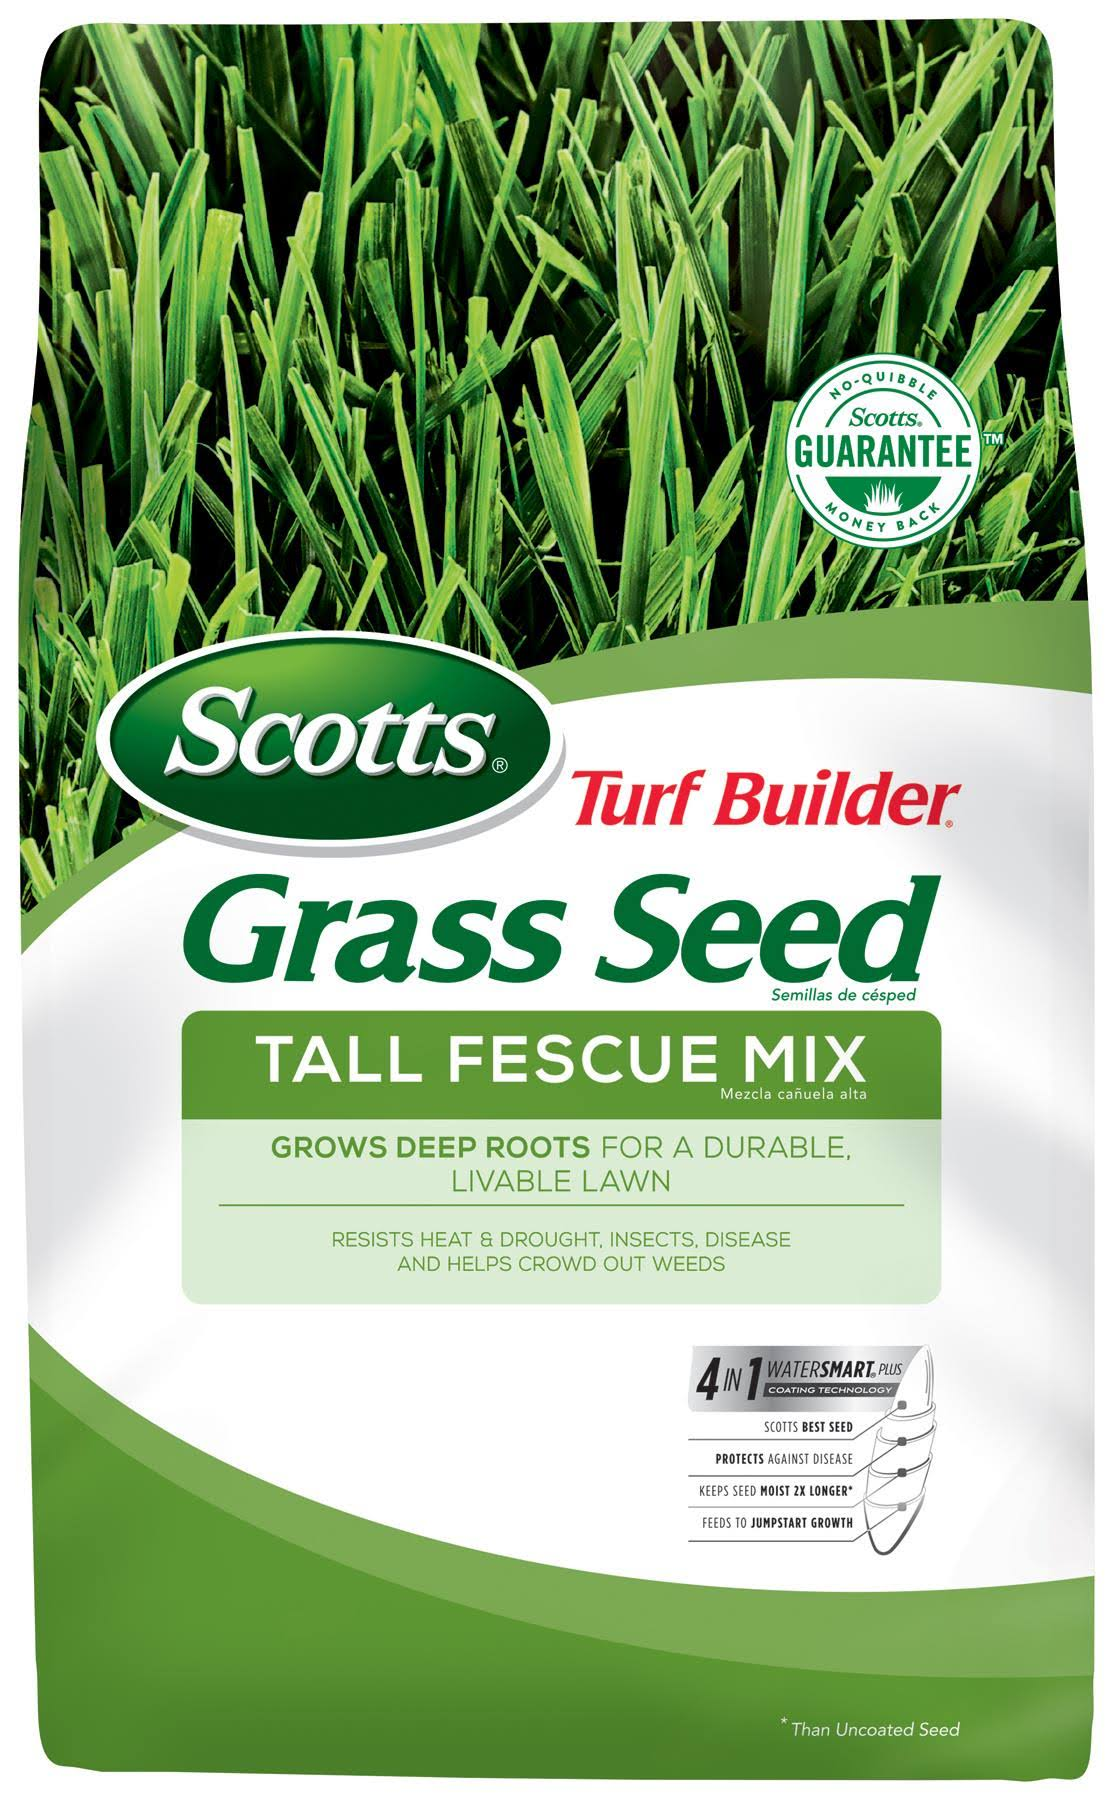 Scotts Turf Builder Grass Seed - Tall Fescue Mix, 3lbs